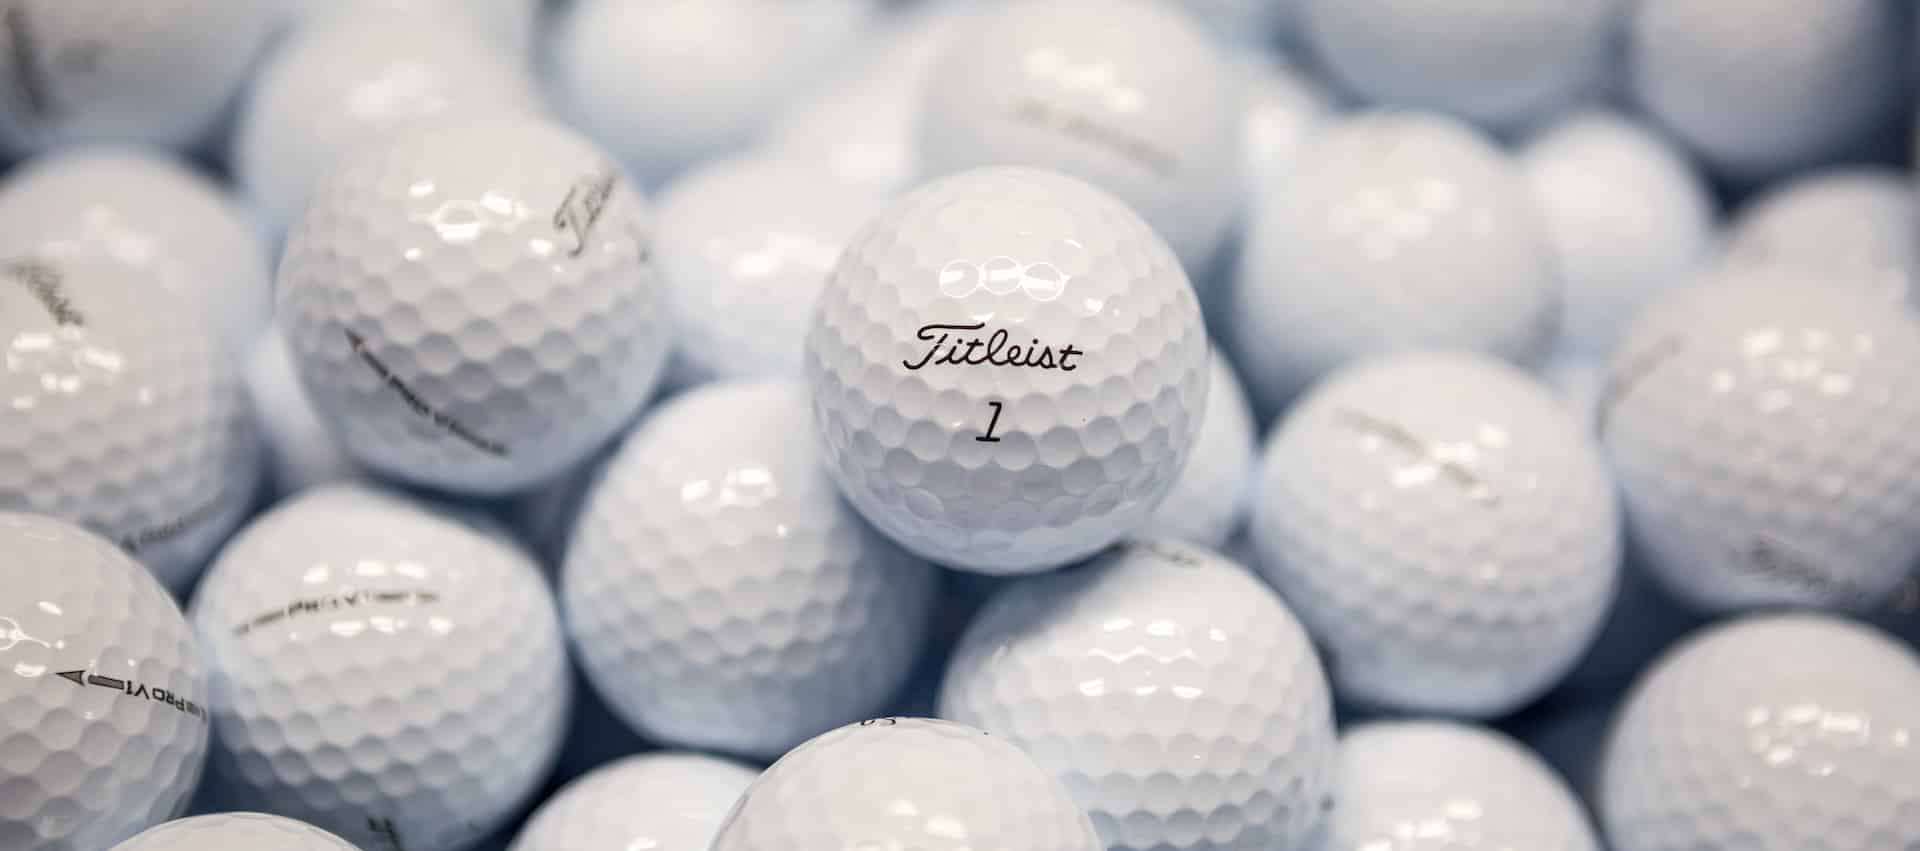 titleist_leadership_shoot_ball_plant_1920x850_1362